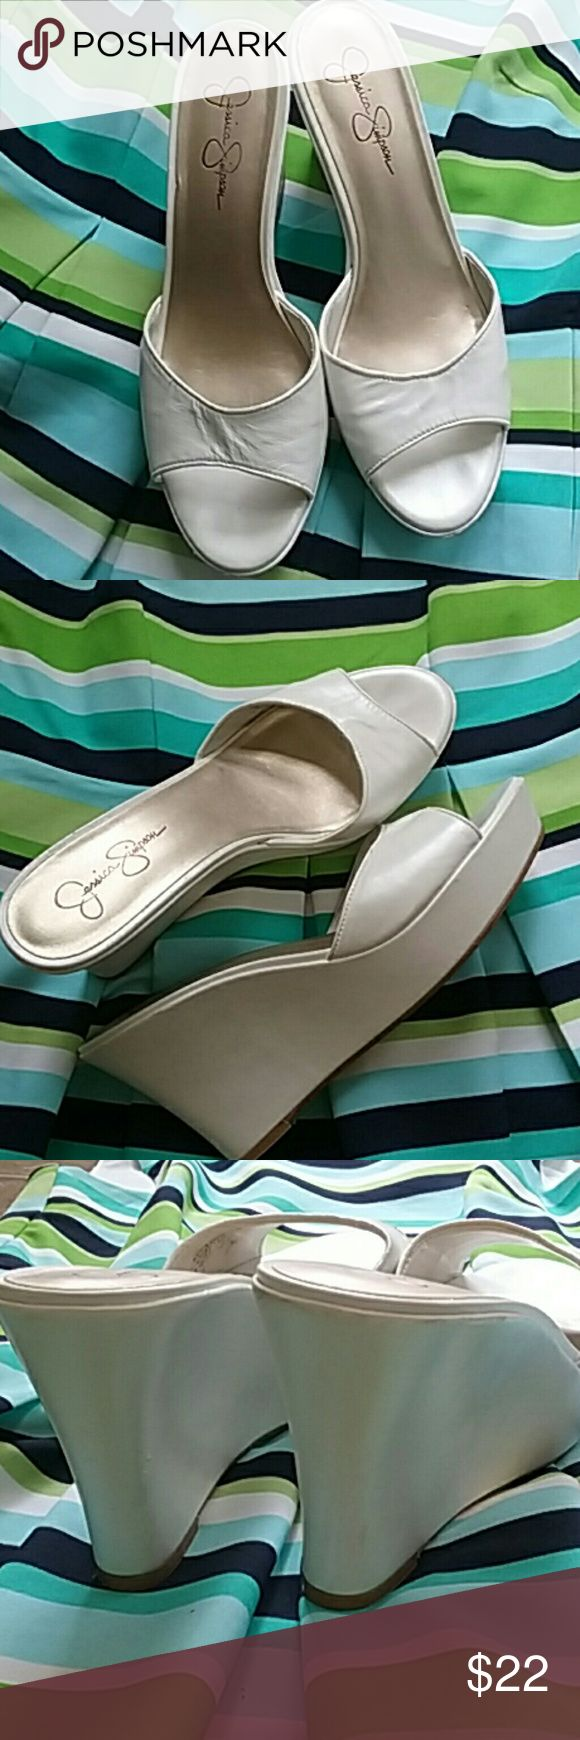 JESSICA SIMPSON WHITE WEDGE GENTLY USED WHITE JESSICA SIMPSON WEDGE SHOES. IN GOOD CONDITION!  With Box Jessica Simpson Shoes Wedges